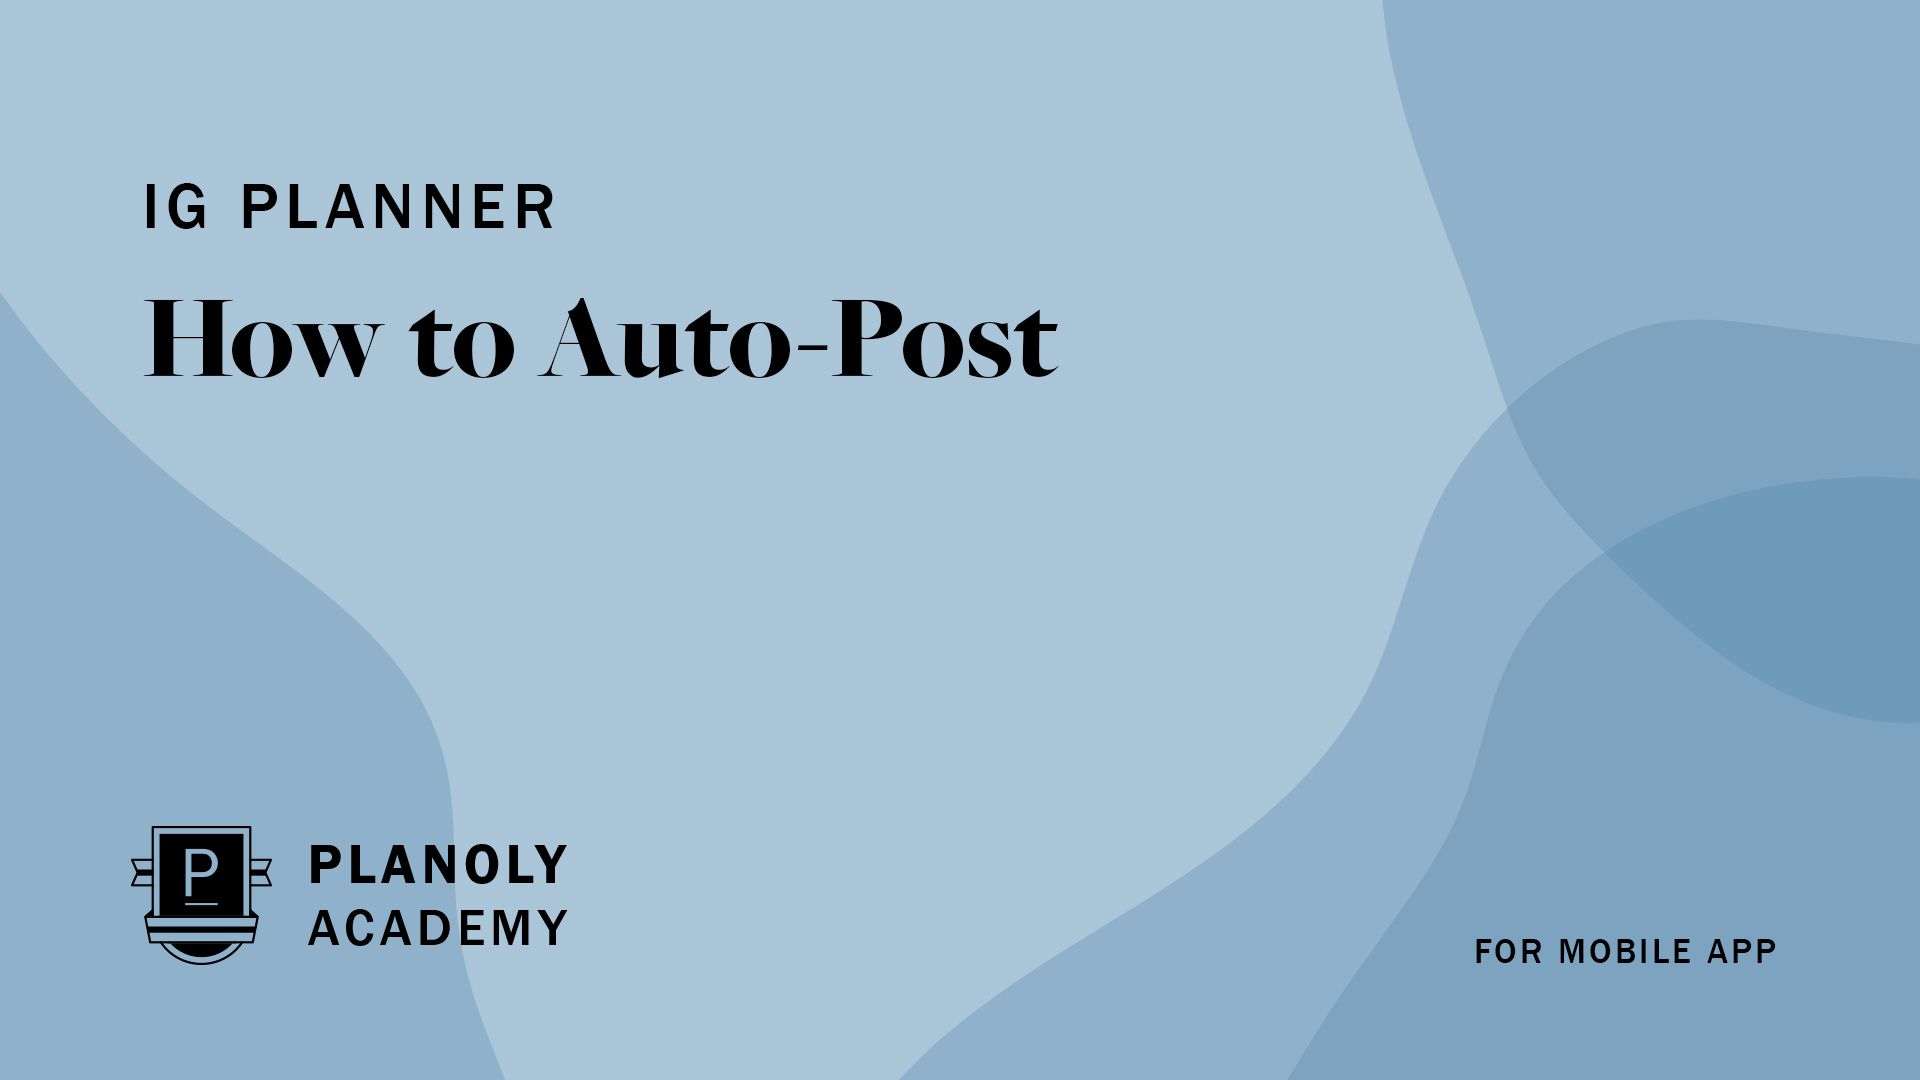 How to Auto-Post using PLANOLY